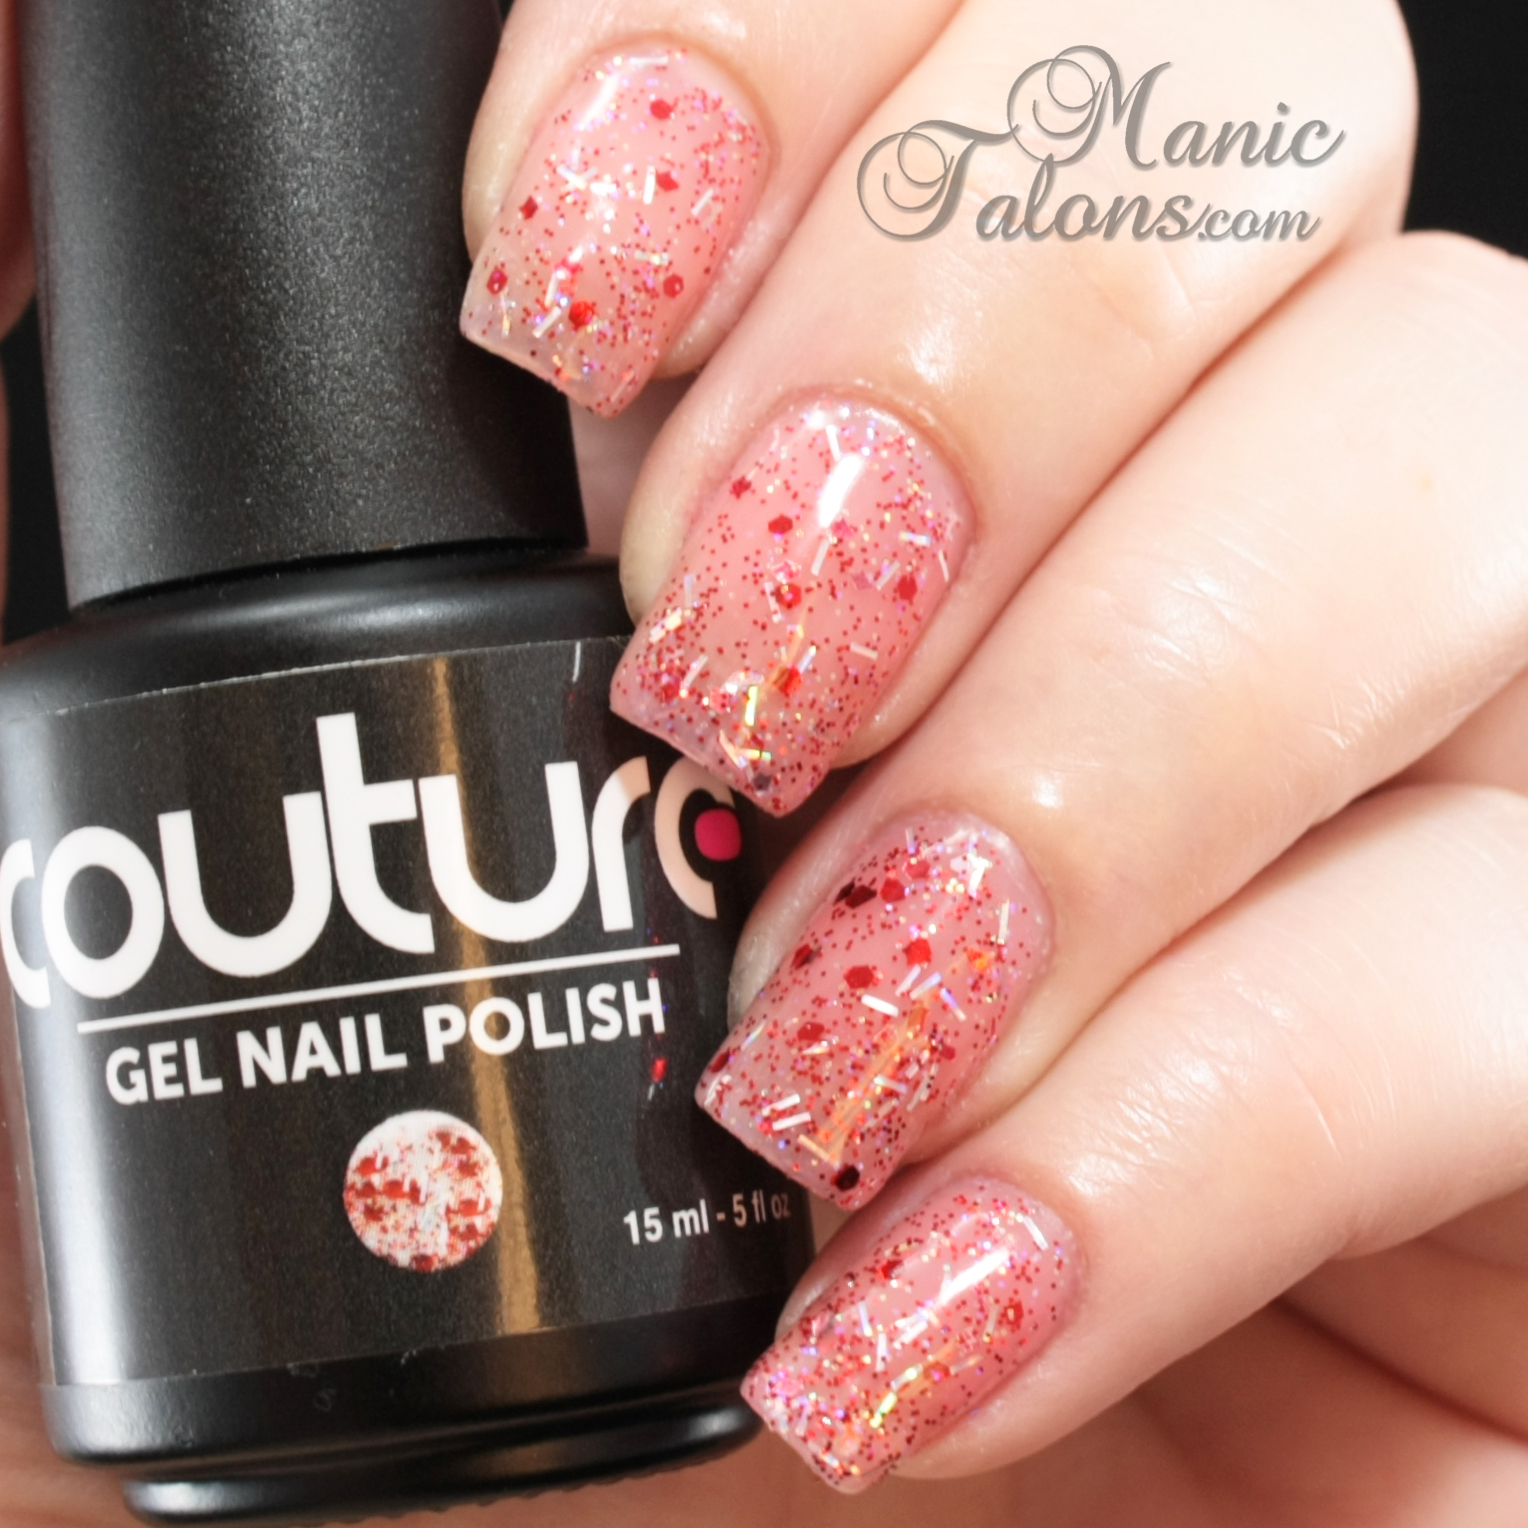 Couture Gel Polish All That Glitters Collection Fireworks Swatch